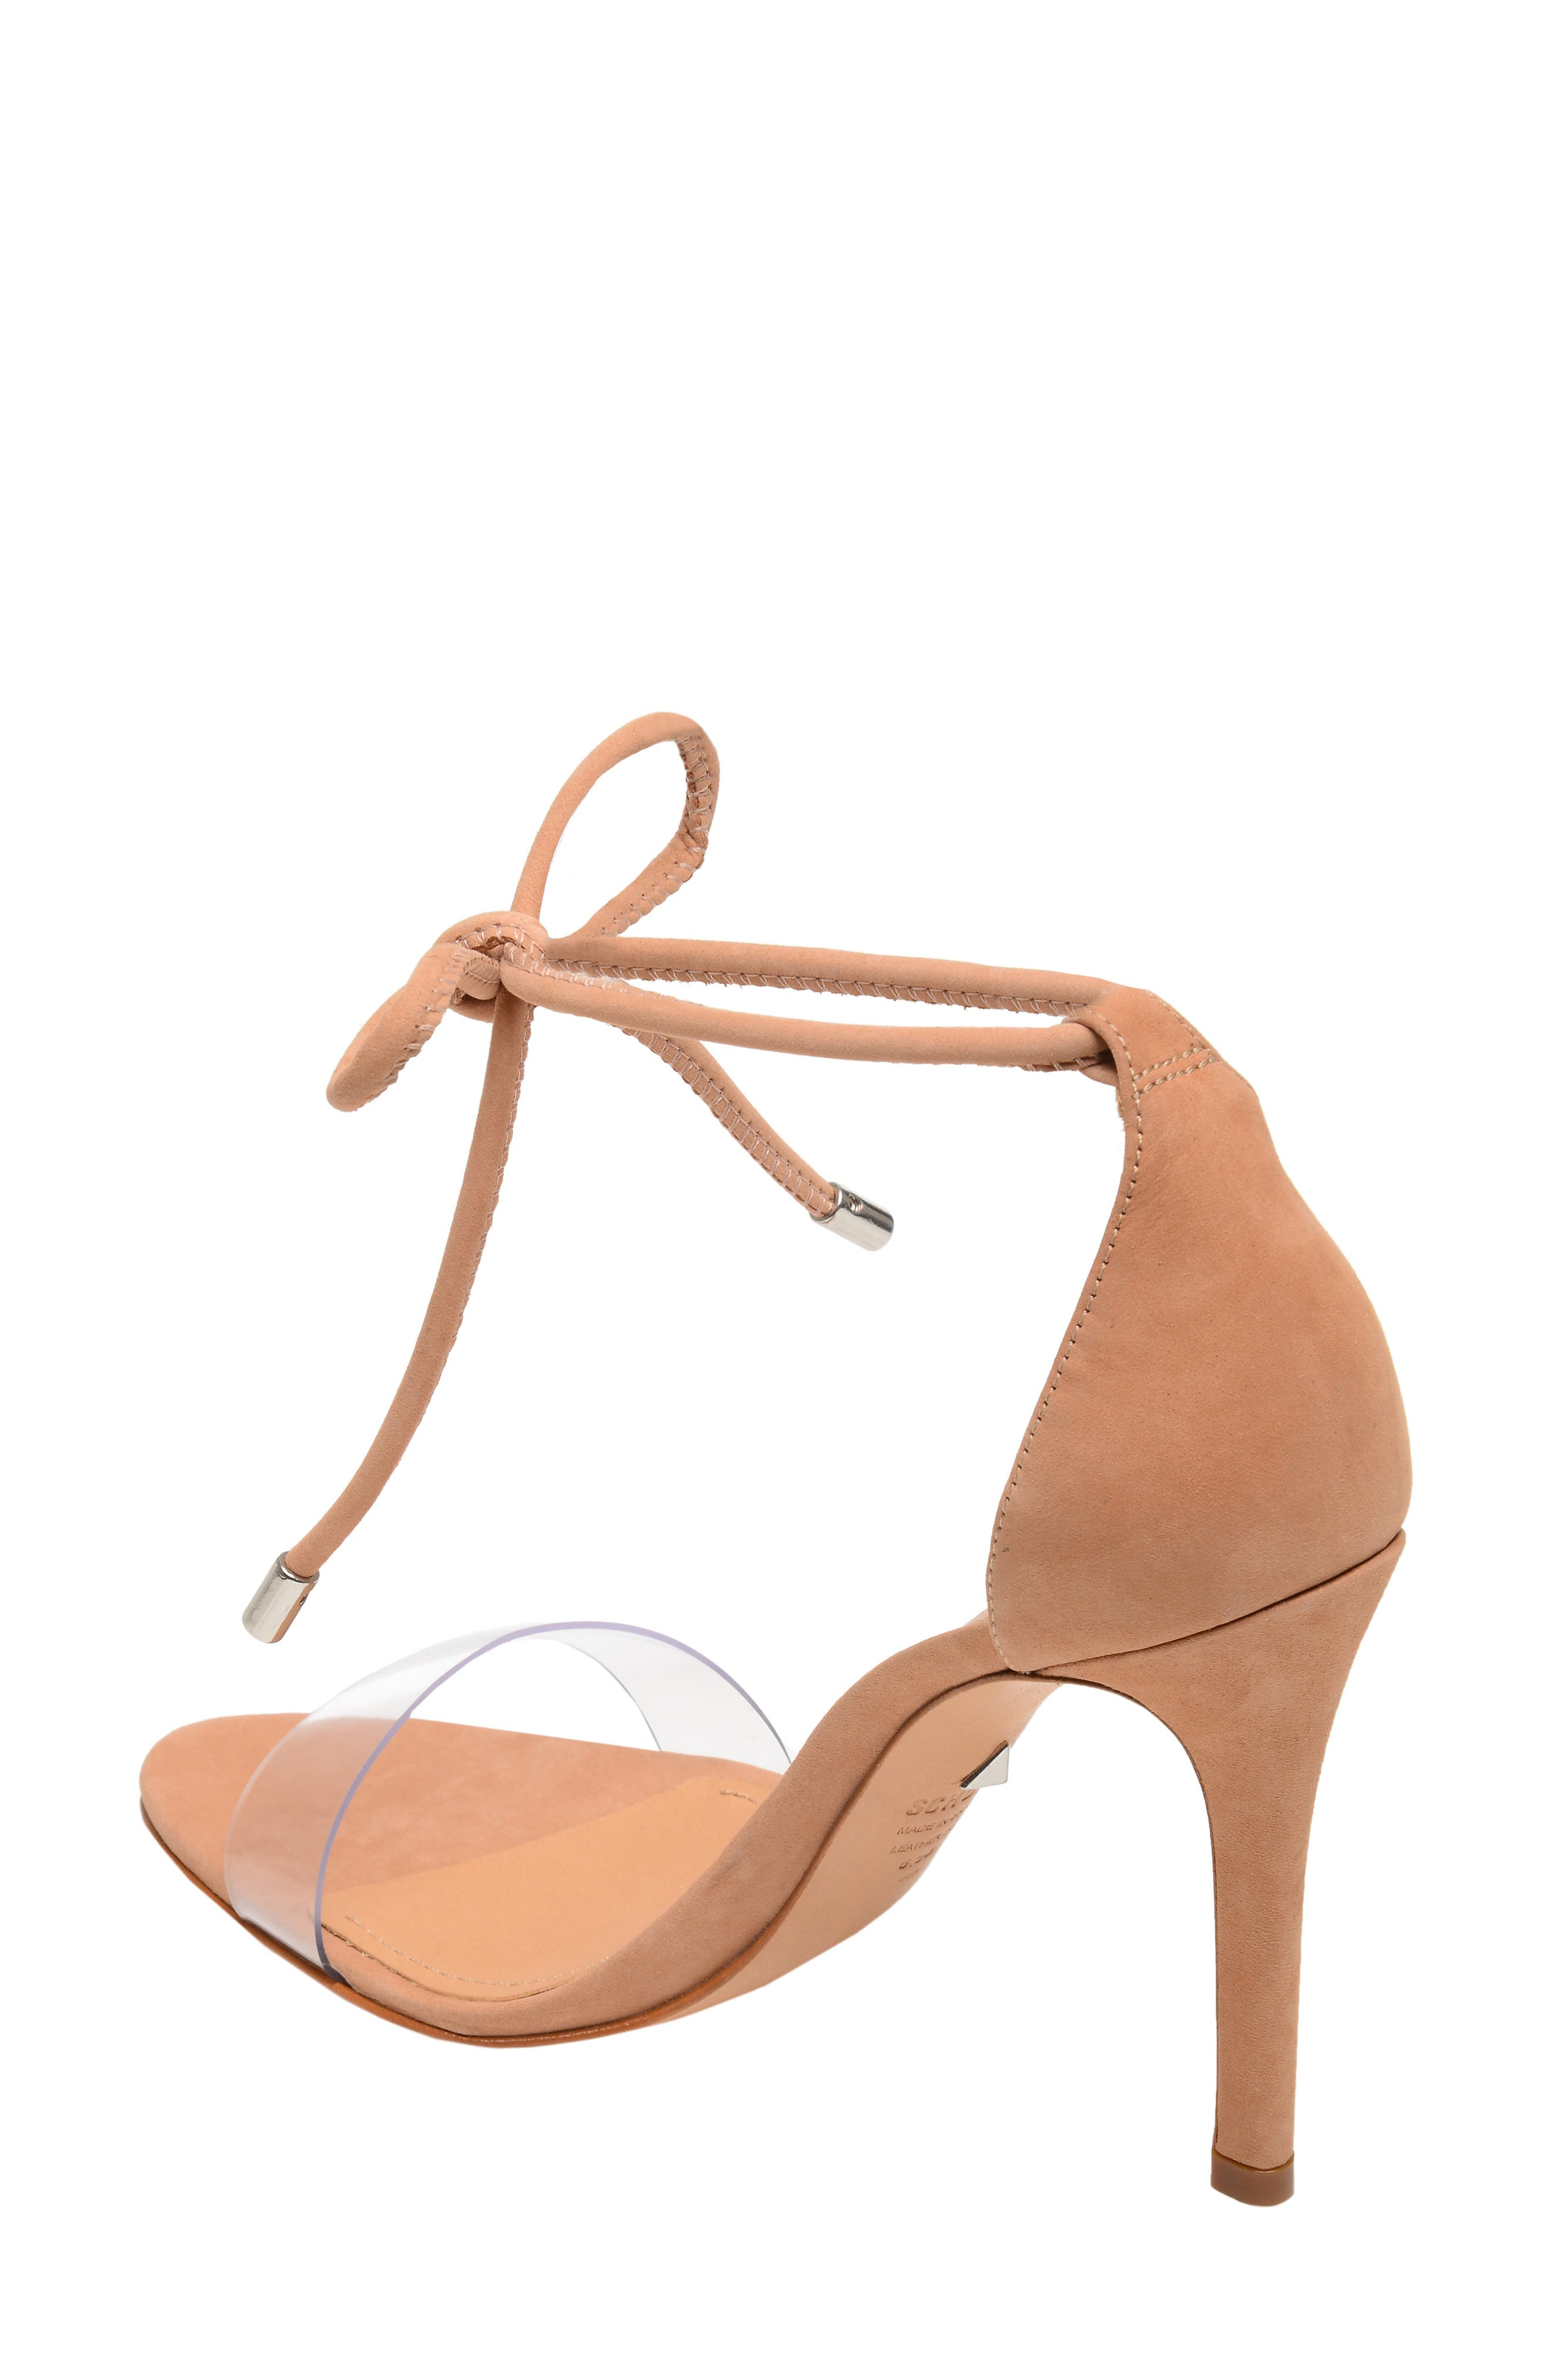 Shutz Monique Ankle Tie Sandal,                             Alternate thumbnail 2, color,                             TRANSPARENT/ HONEY BEIGE